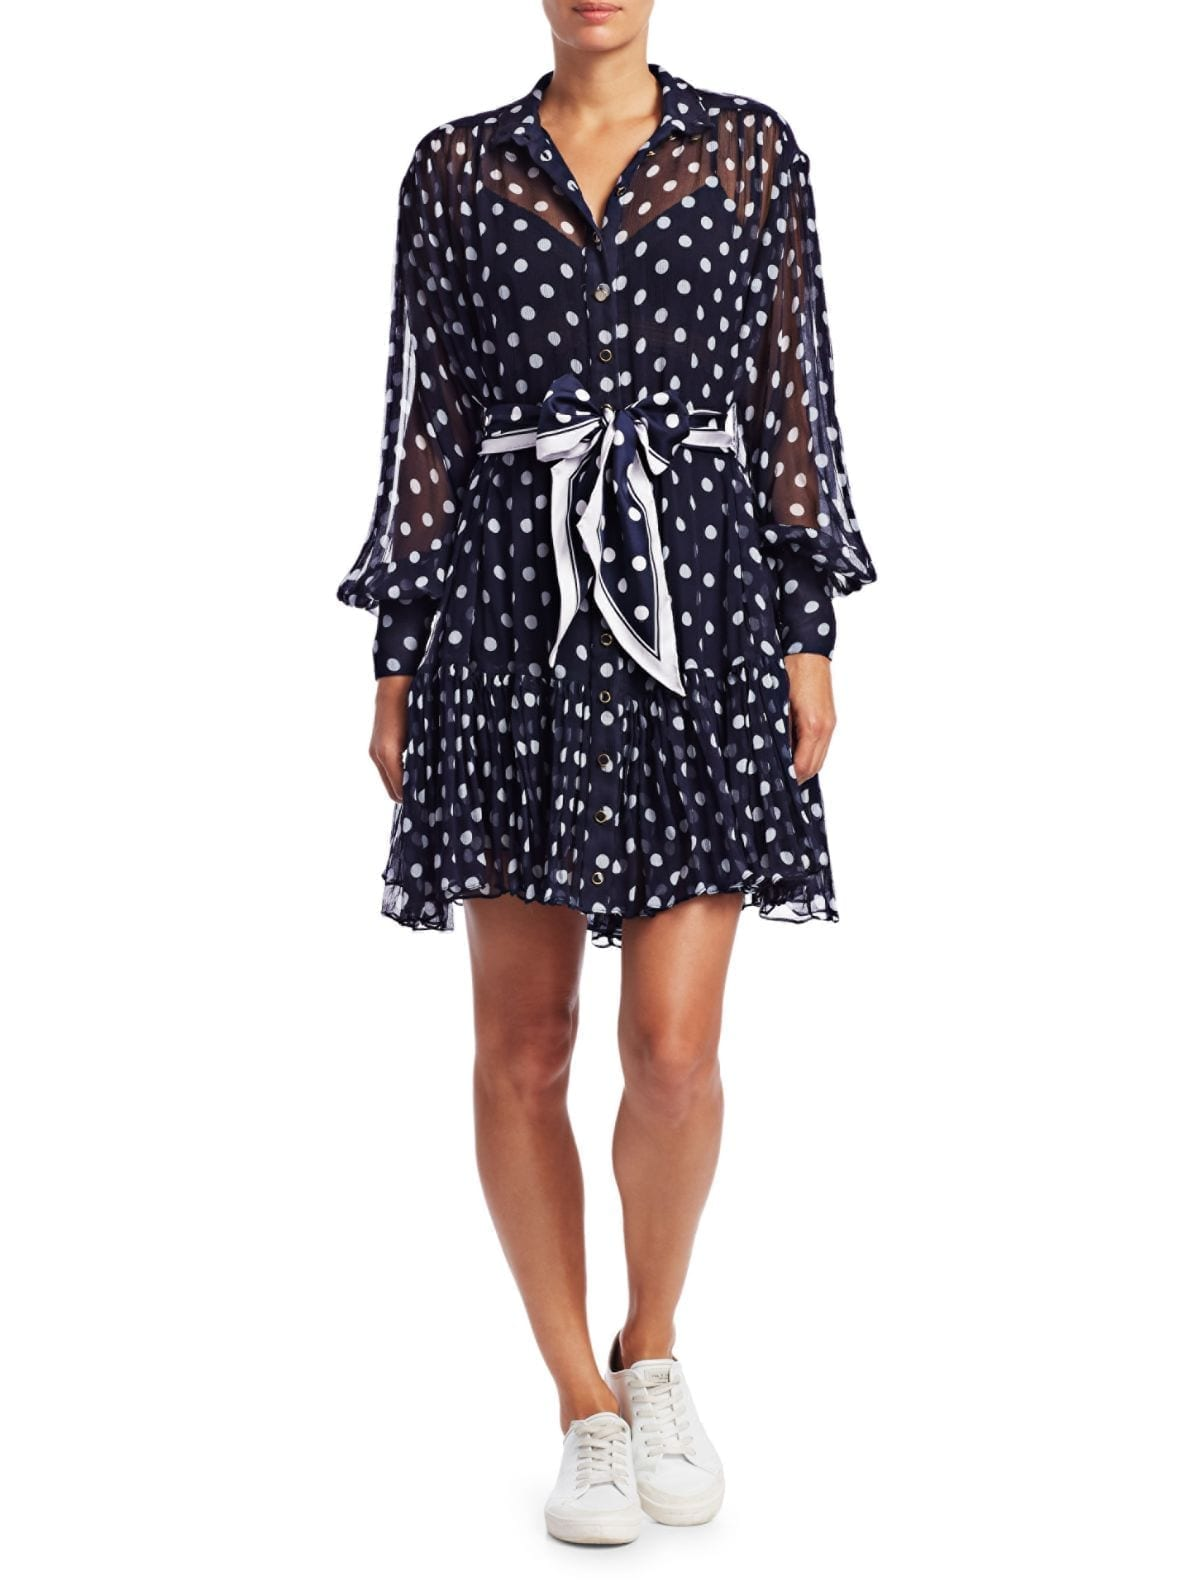 ZIMMERMANN Eye Spy Silk Polka Dot Mini Dress